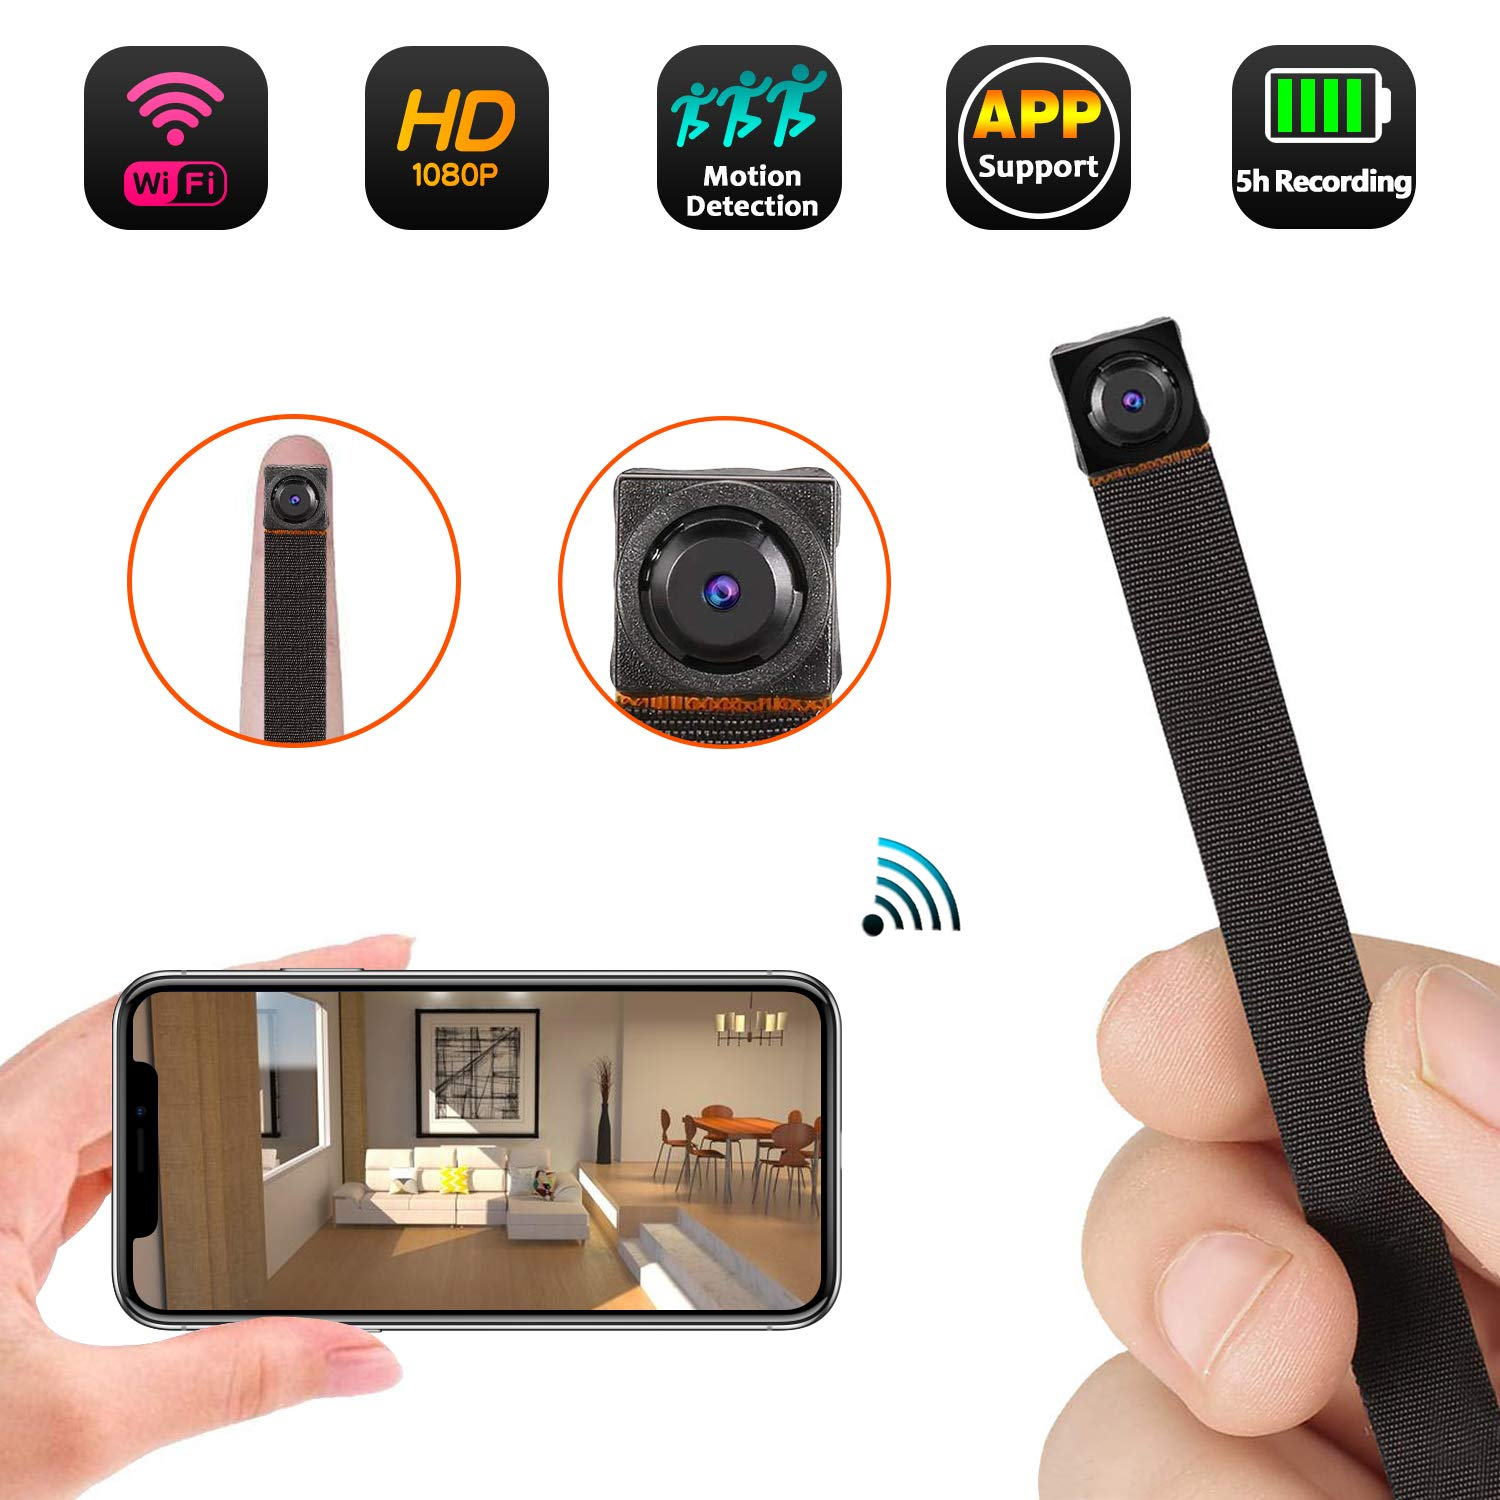 Mini WiFi Camera 1080P Wireless Hidden Camera Small Nanny Cam with Motion Detection Home Security Recording Remote View Indoor Outdoor Using by FreedomCam